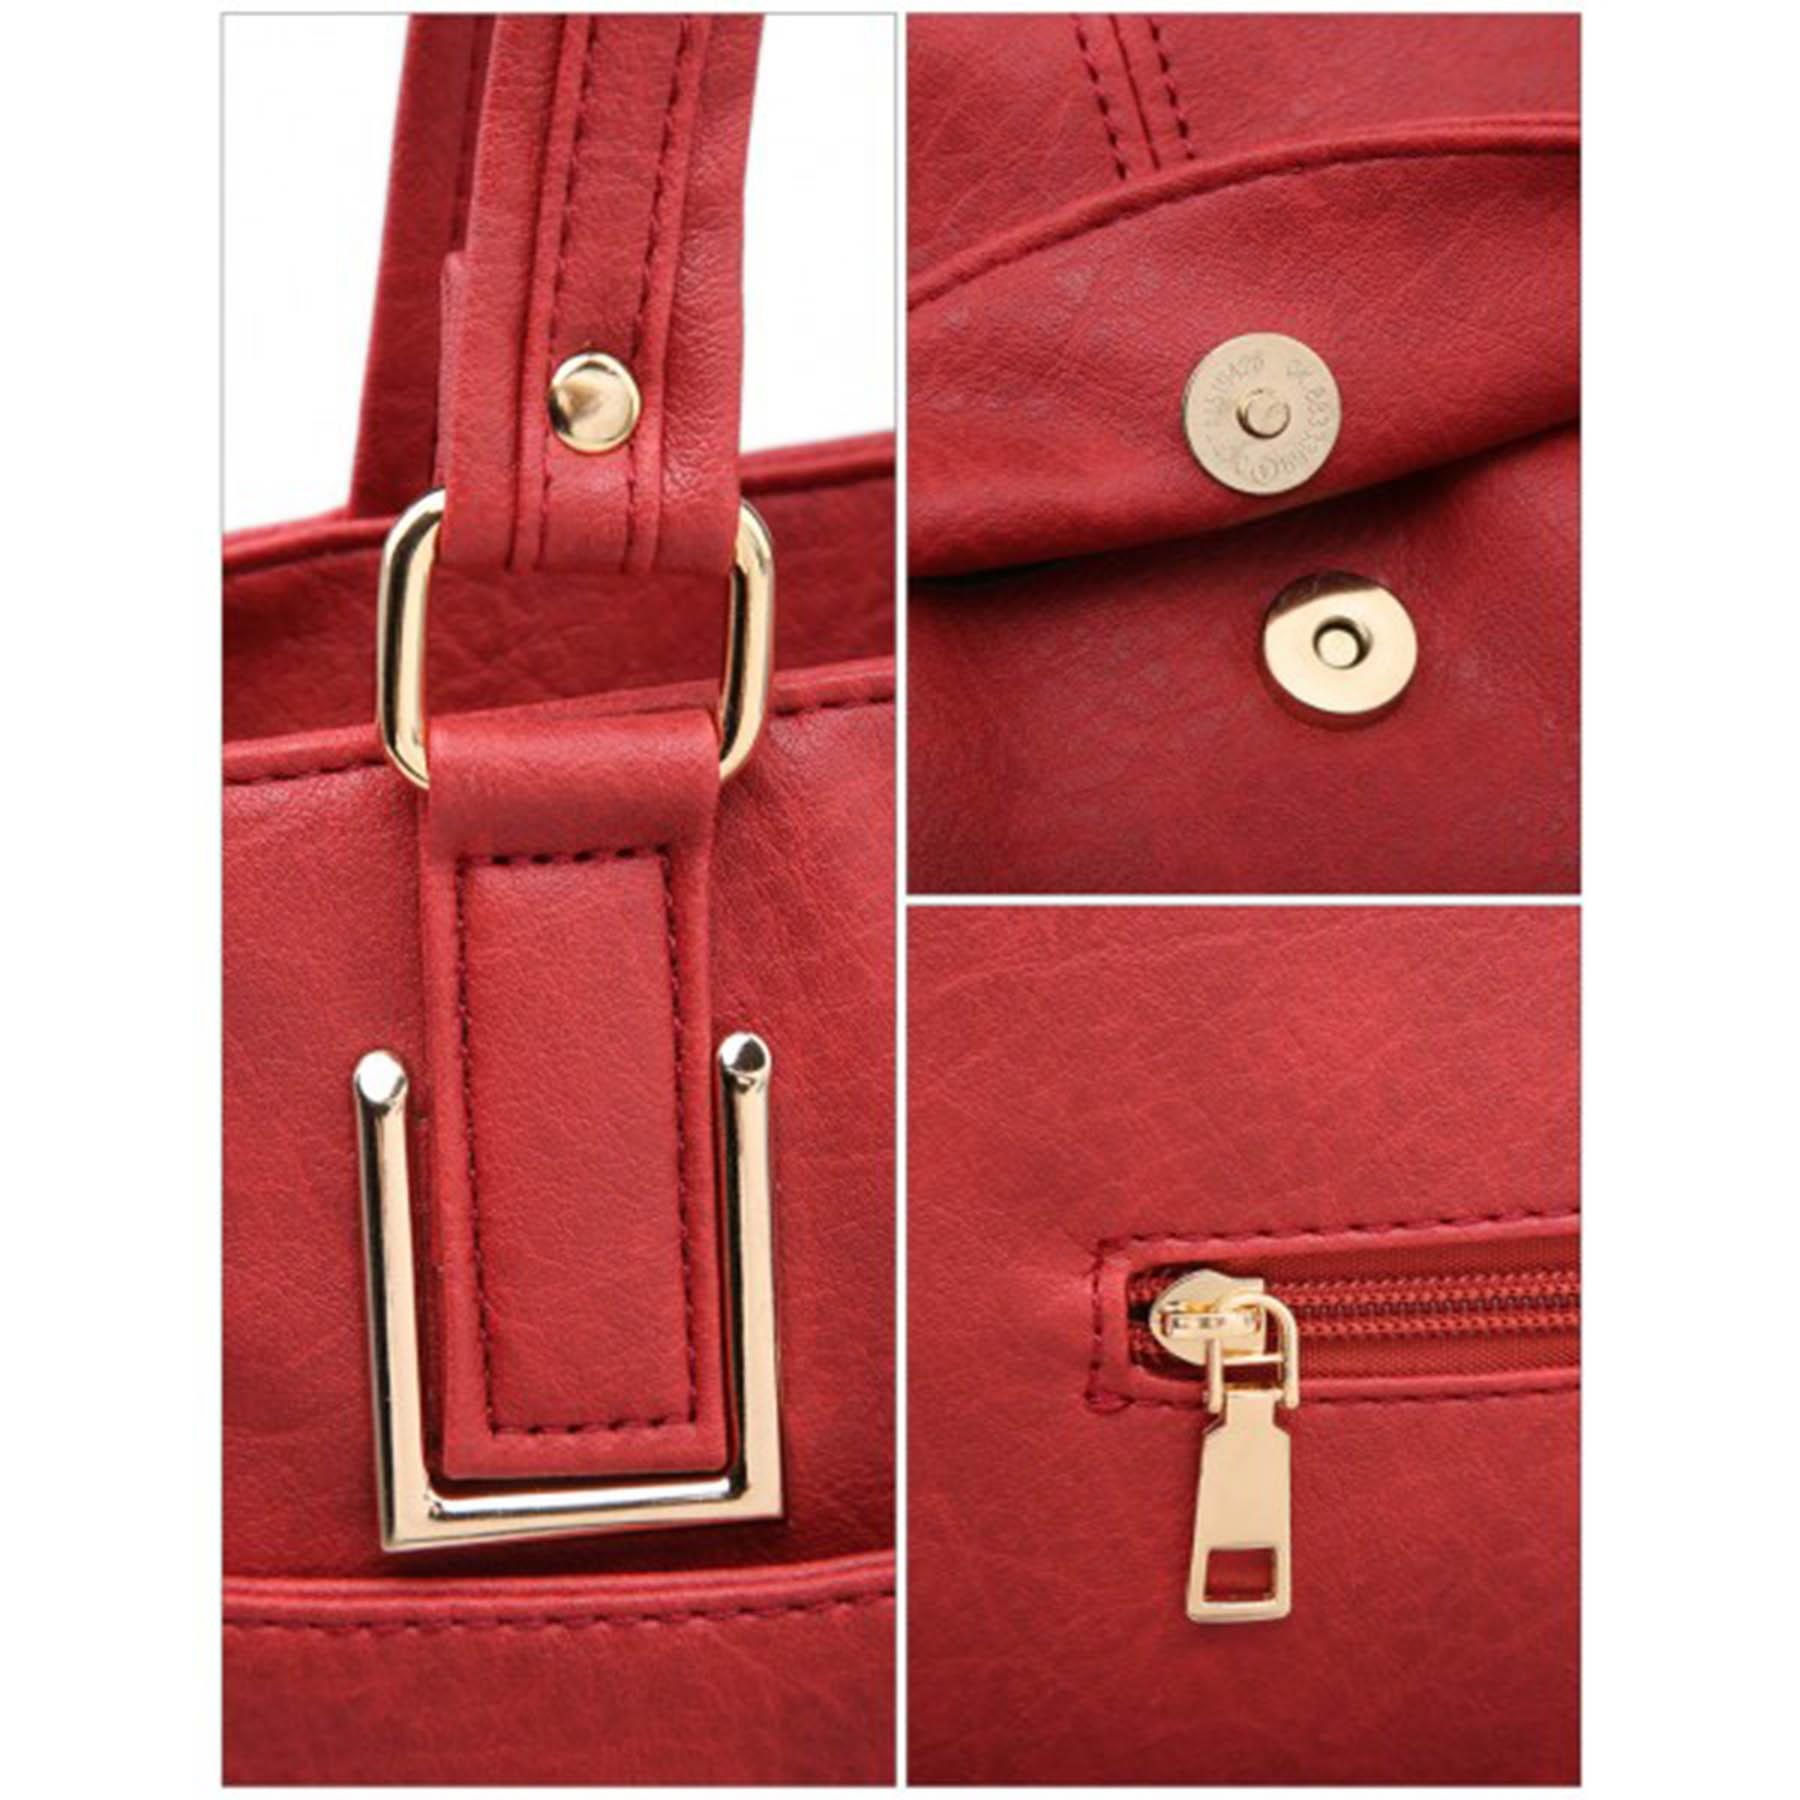 New-Panel-Design-Synthetic-Leather-Simple-Shoulder-Shopper-Tote-Bag thumbnail 13